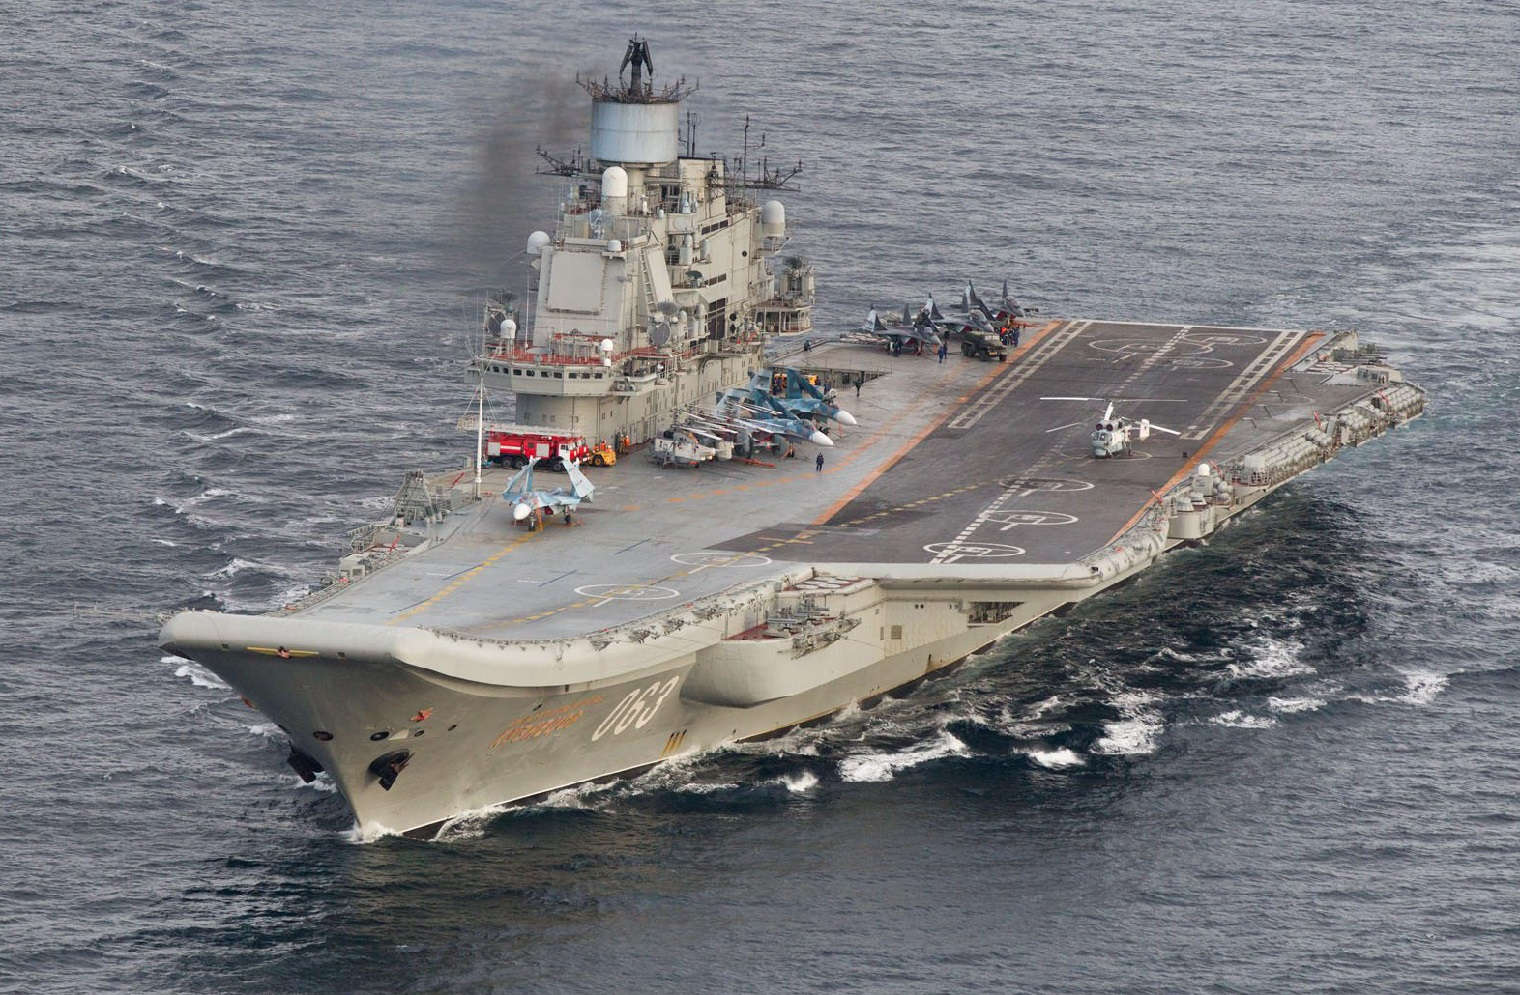 Russia's Only Aircraft Carrier Is Going to Get a Massive Refit